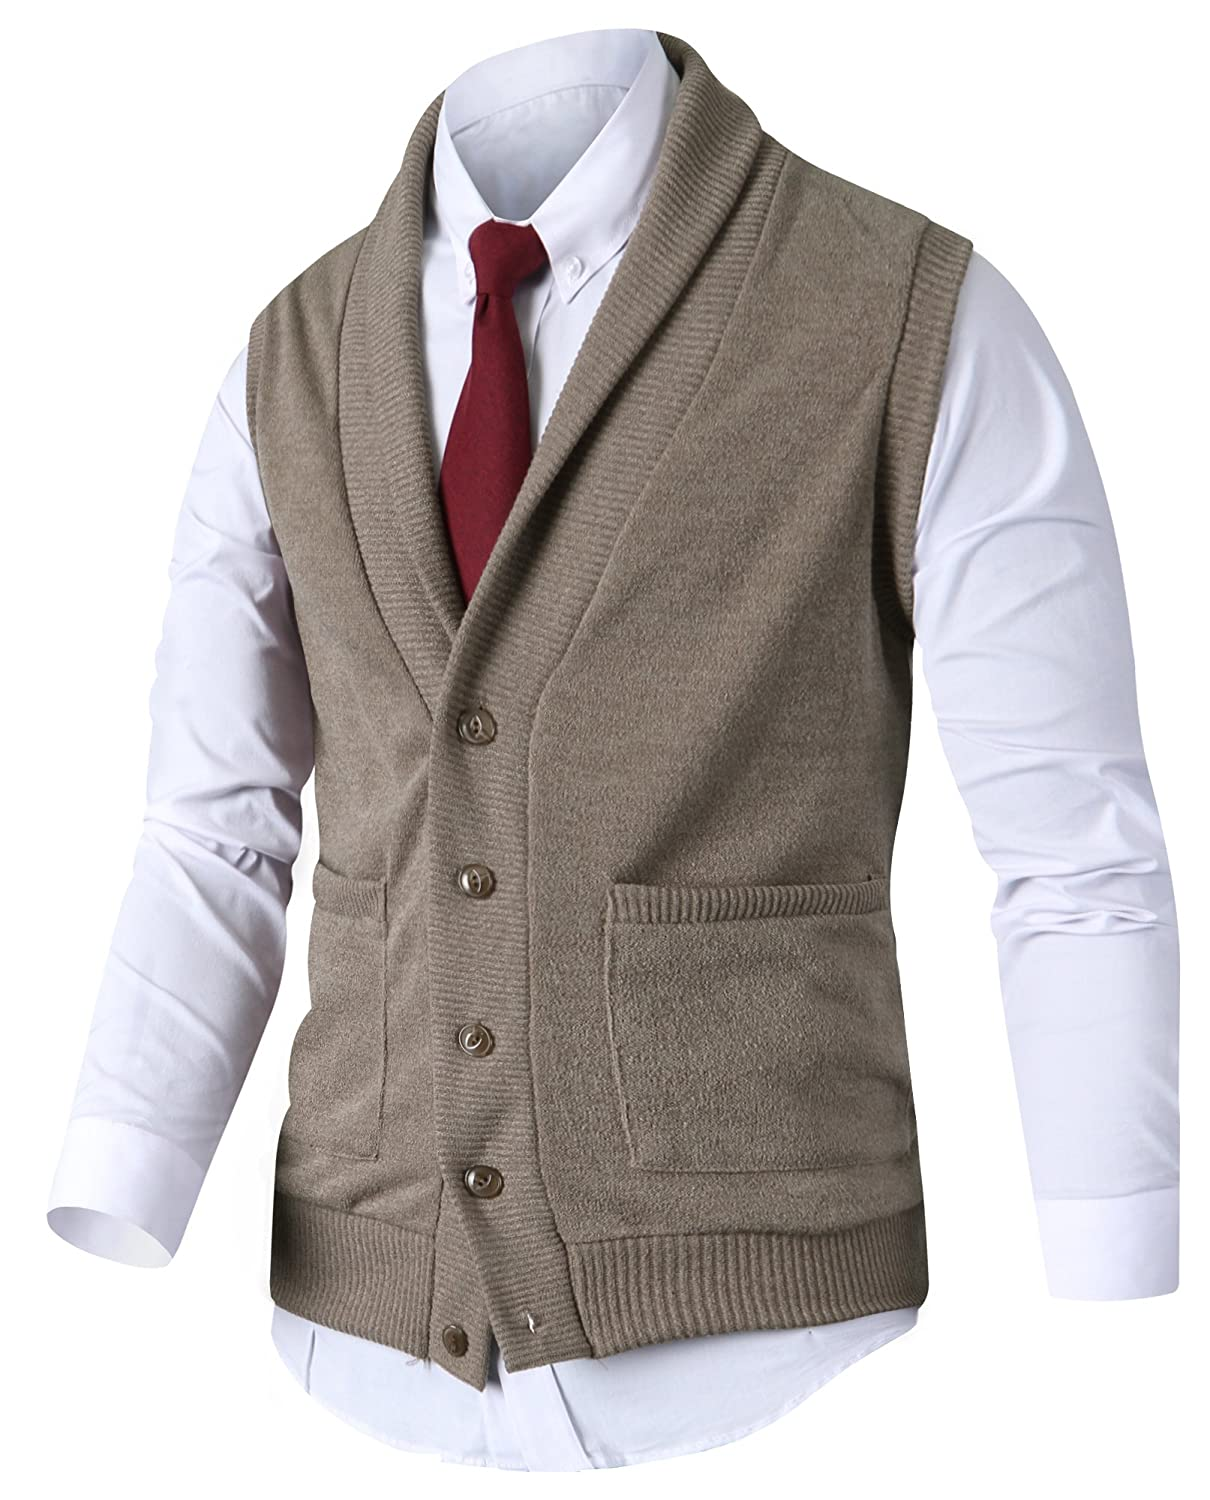 HARRISON83 Mens Slim Fit Shawl Knitted Pullover Sweaters Cardigan Vest